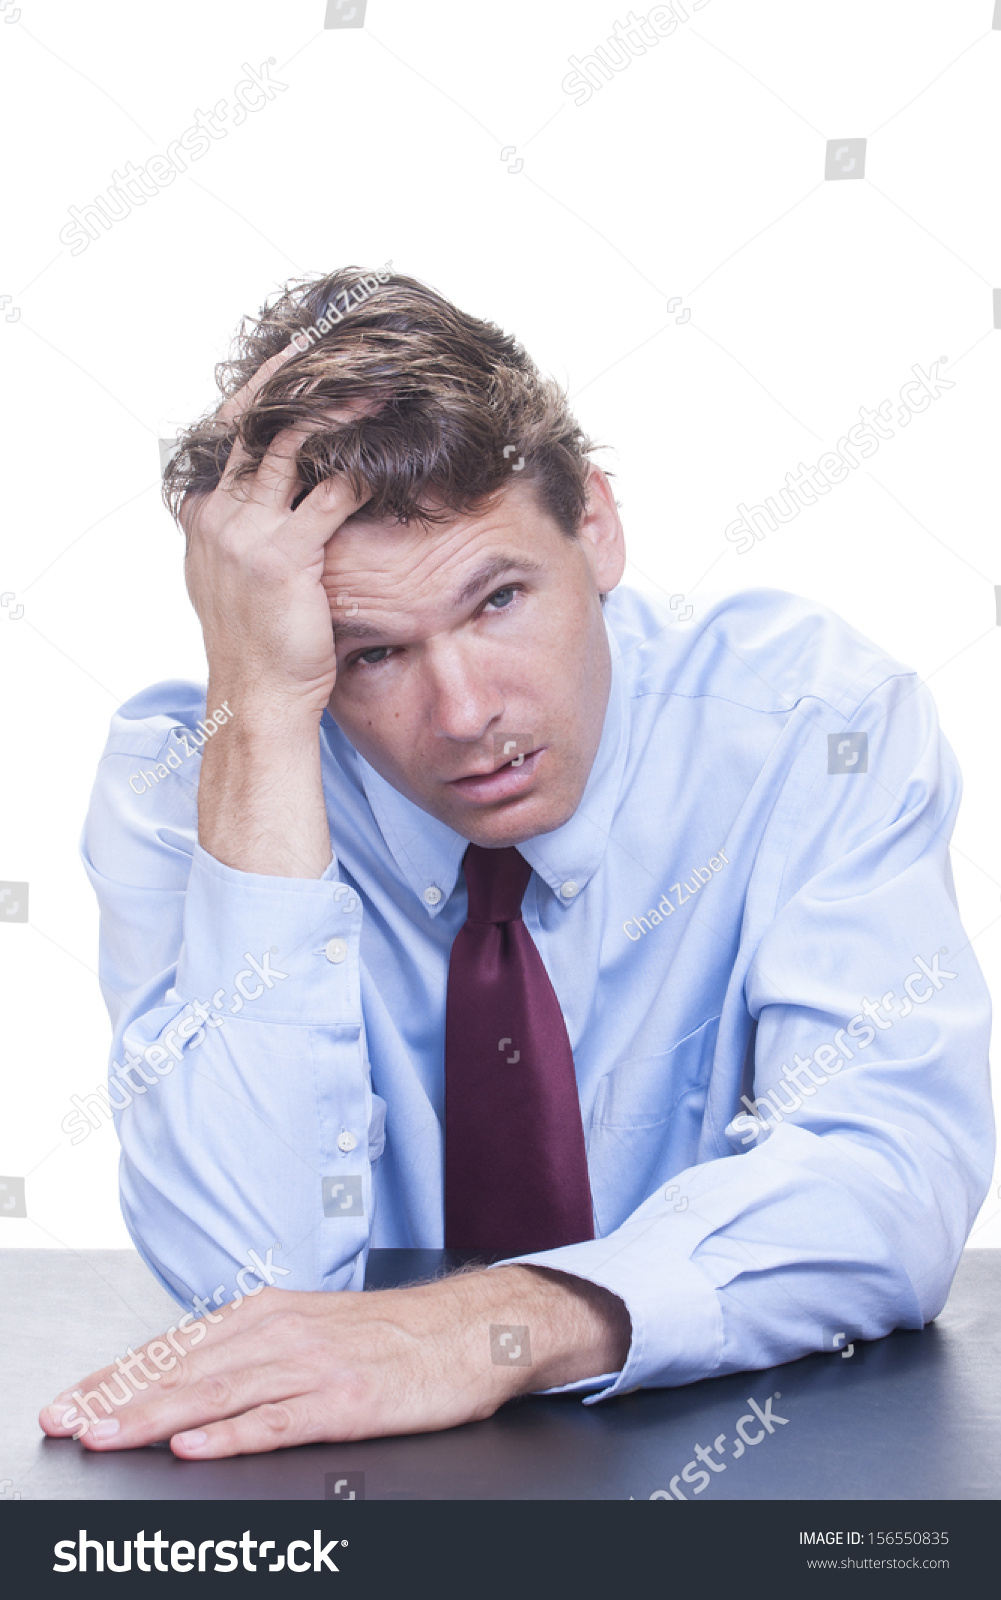 Frustrated office worker on the phone holding stock photo image - Frustrated White Male Office Worker Leans His Head Into His Hand As He Slouches At His